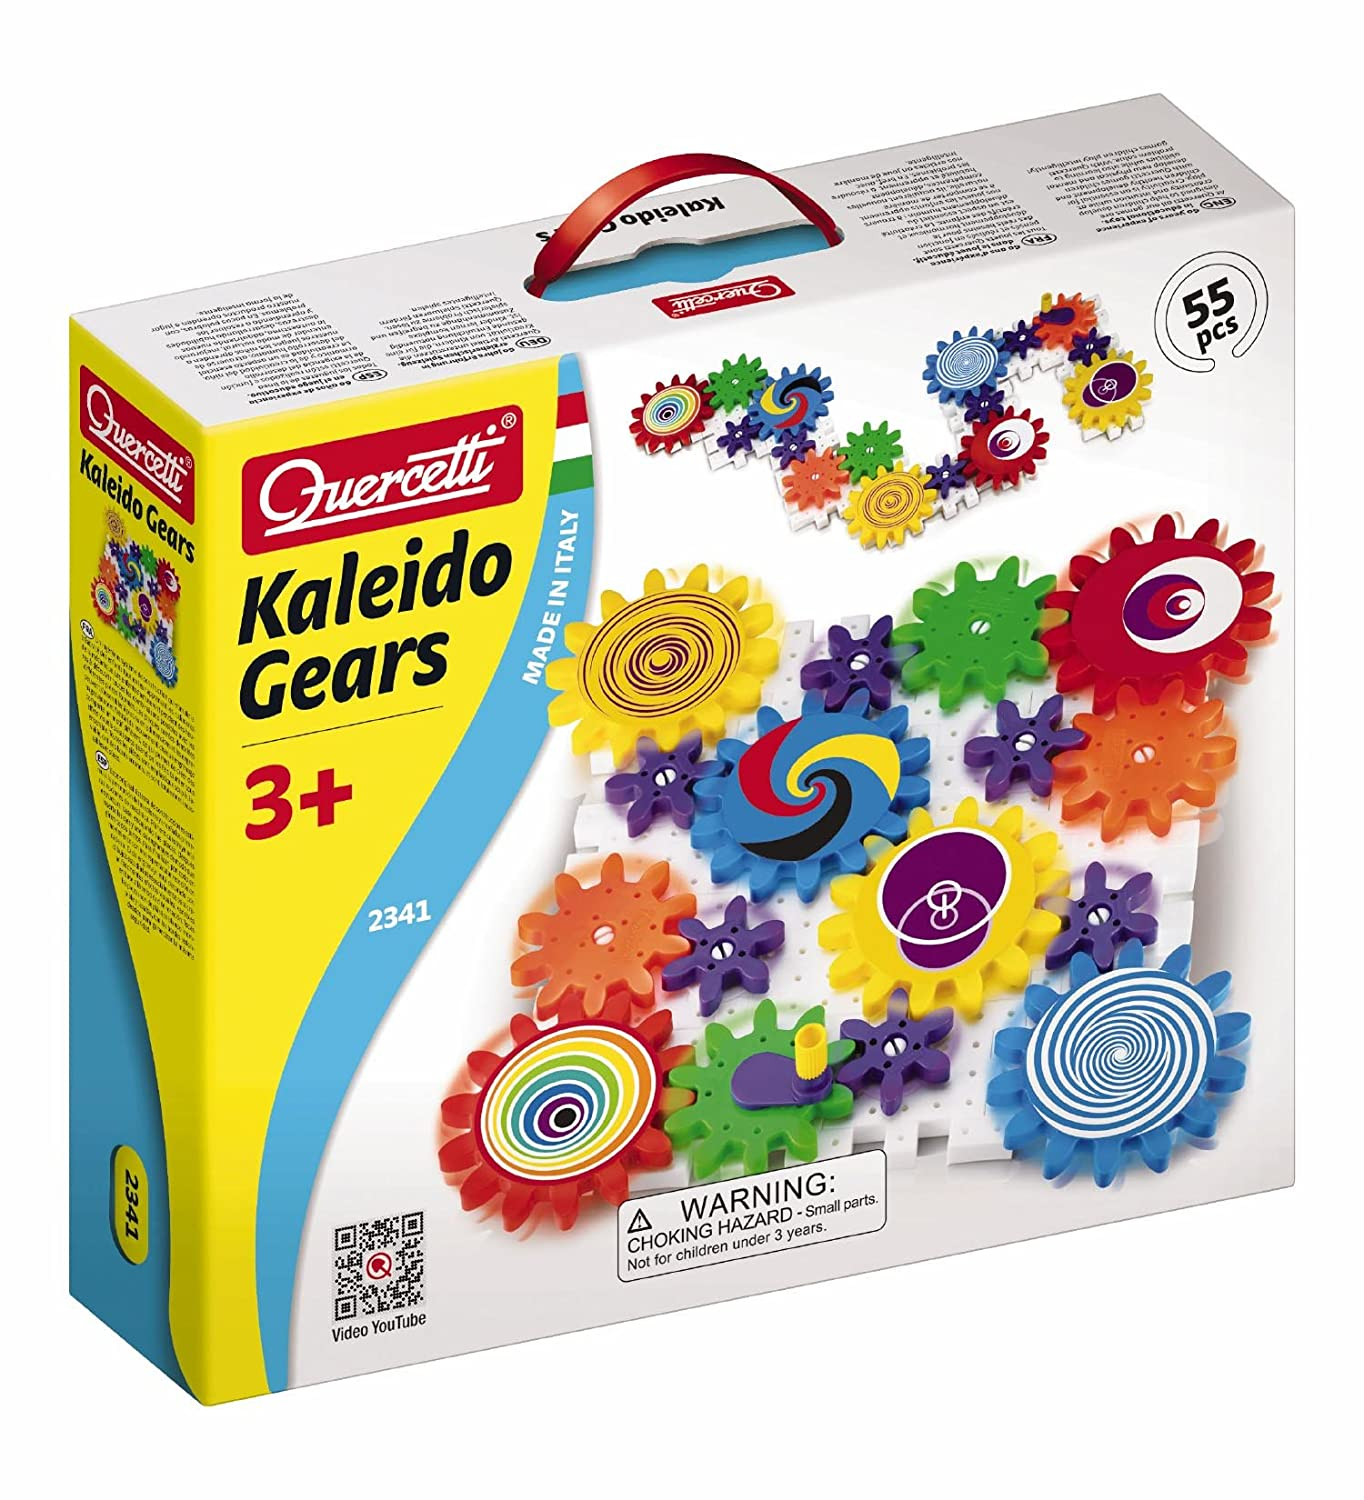 Amazon Quercetti Kaleido Gears 55 Piece Building Set with 3